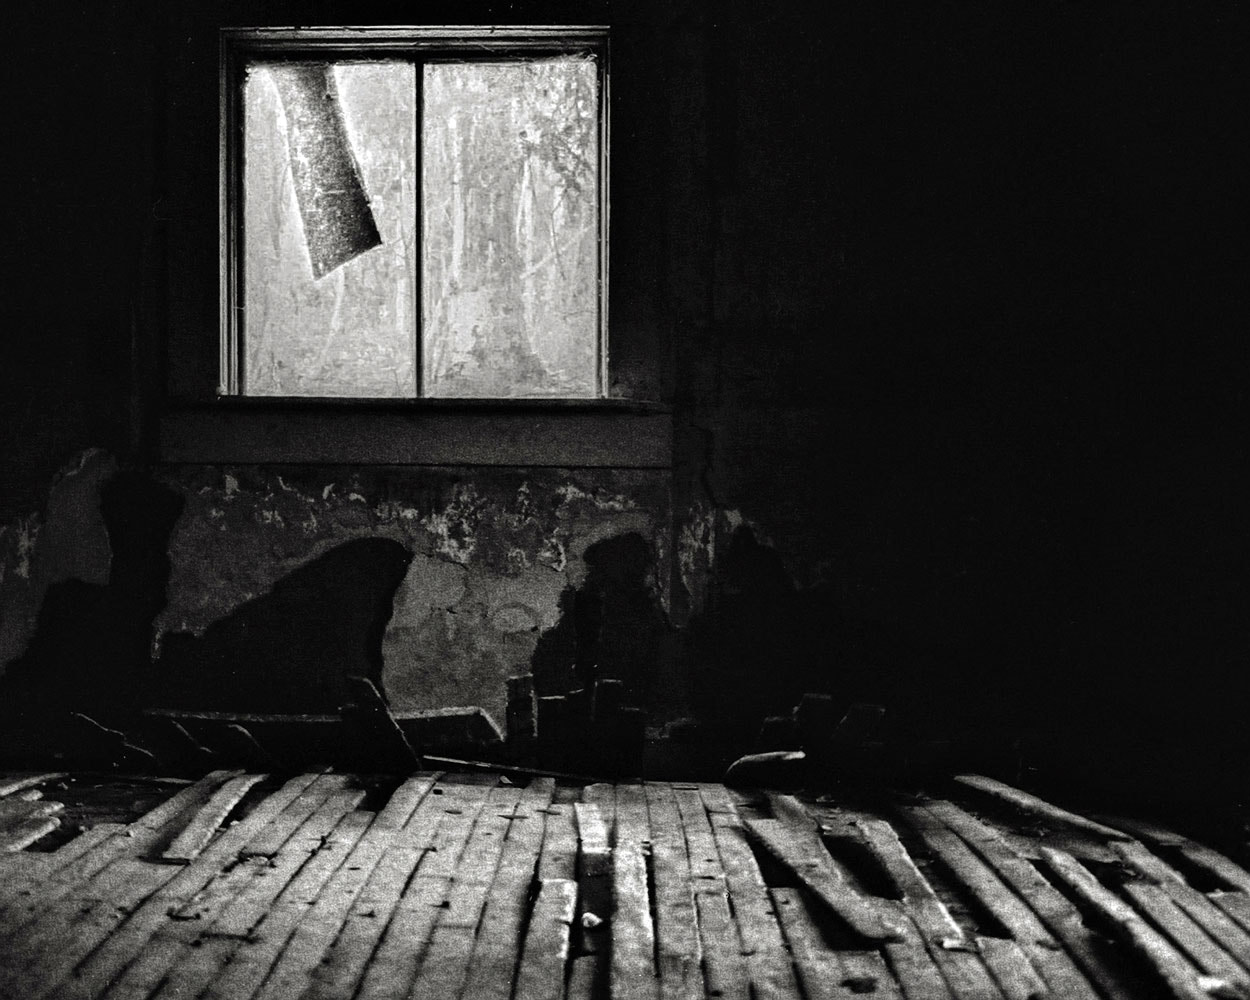 Photograph Cleary Buckled Floor by Phil Ackley on 500px